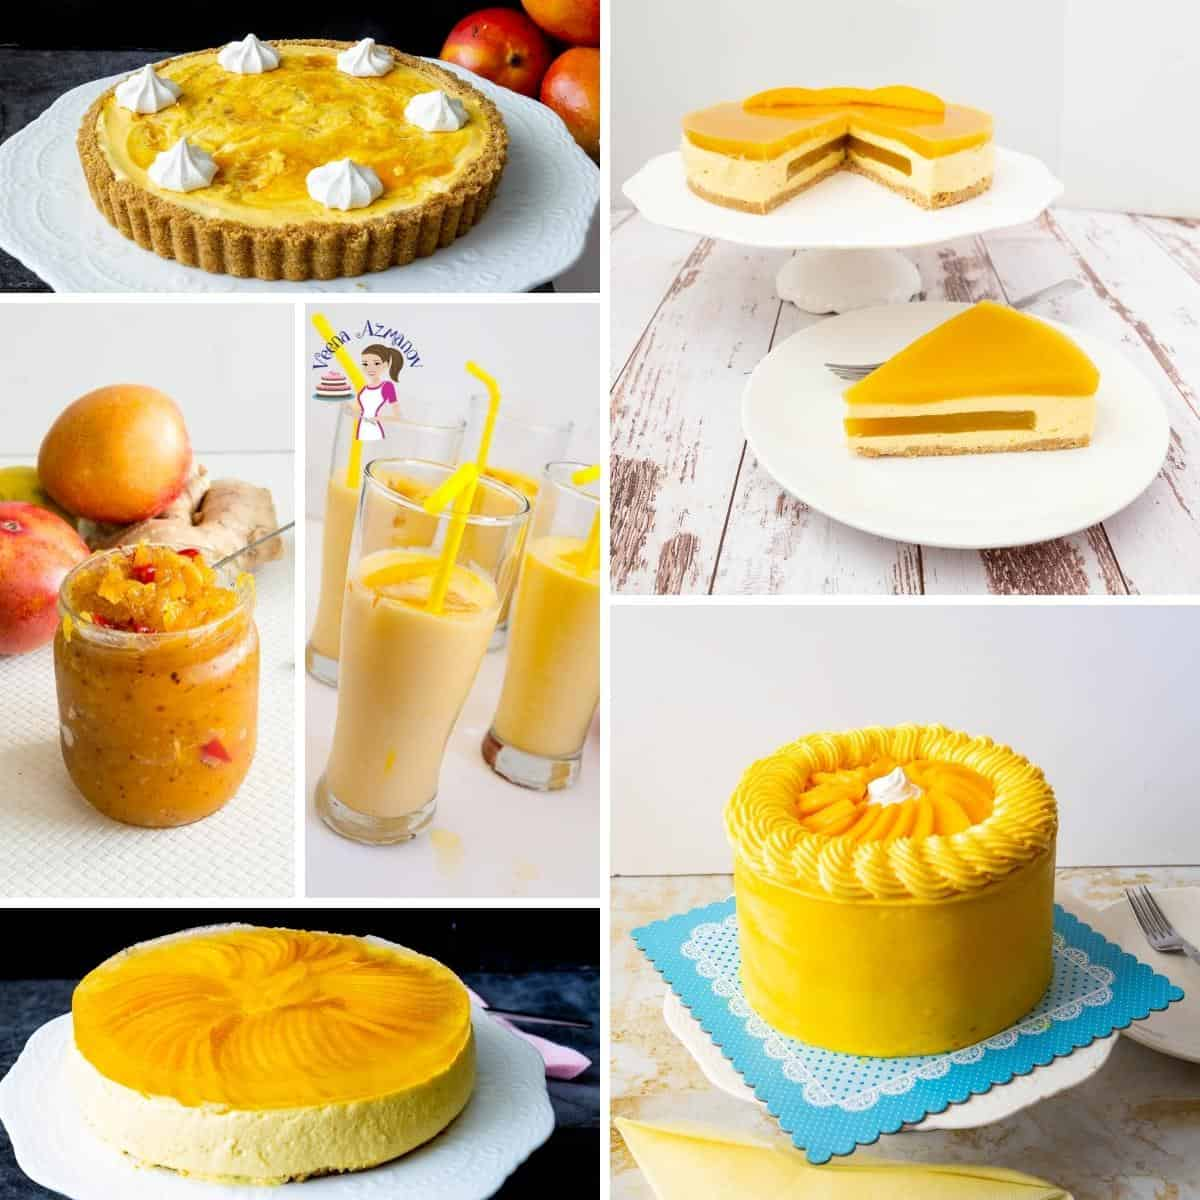 Collage for recipes made using mango.